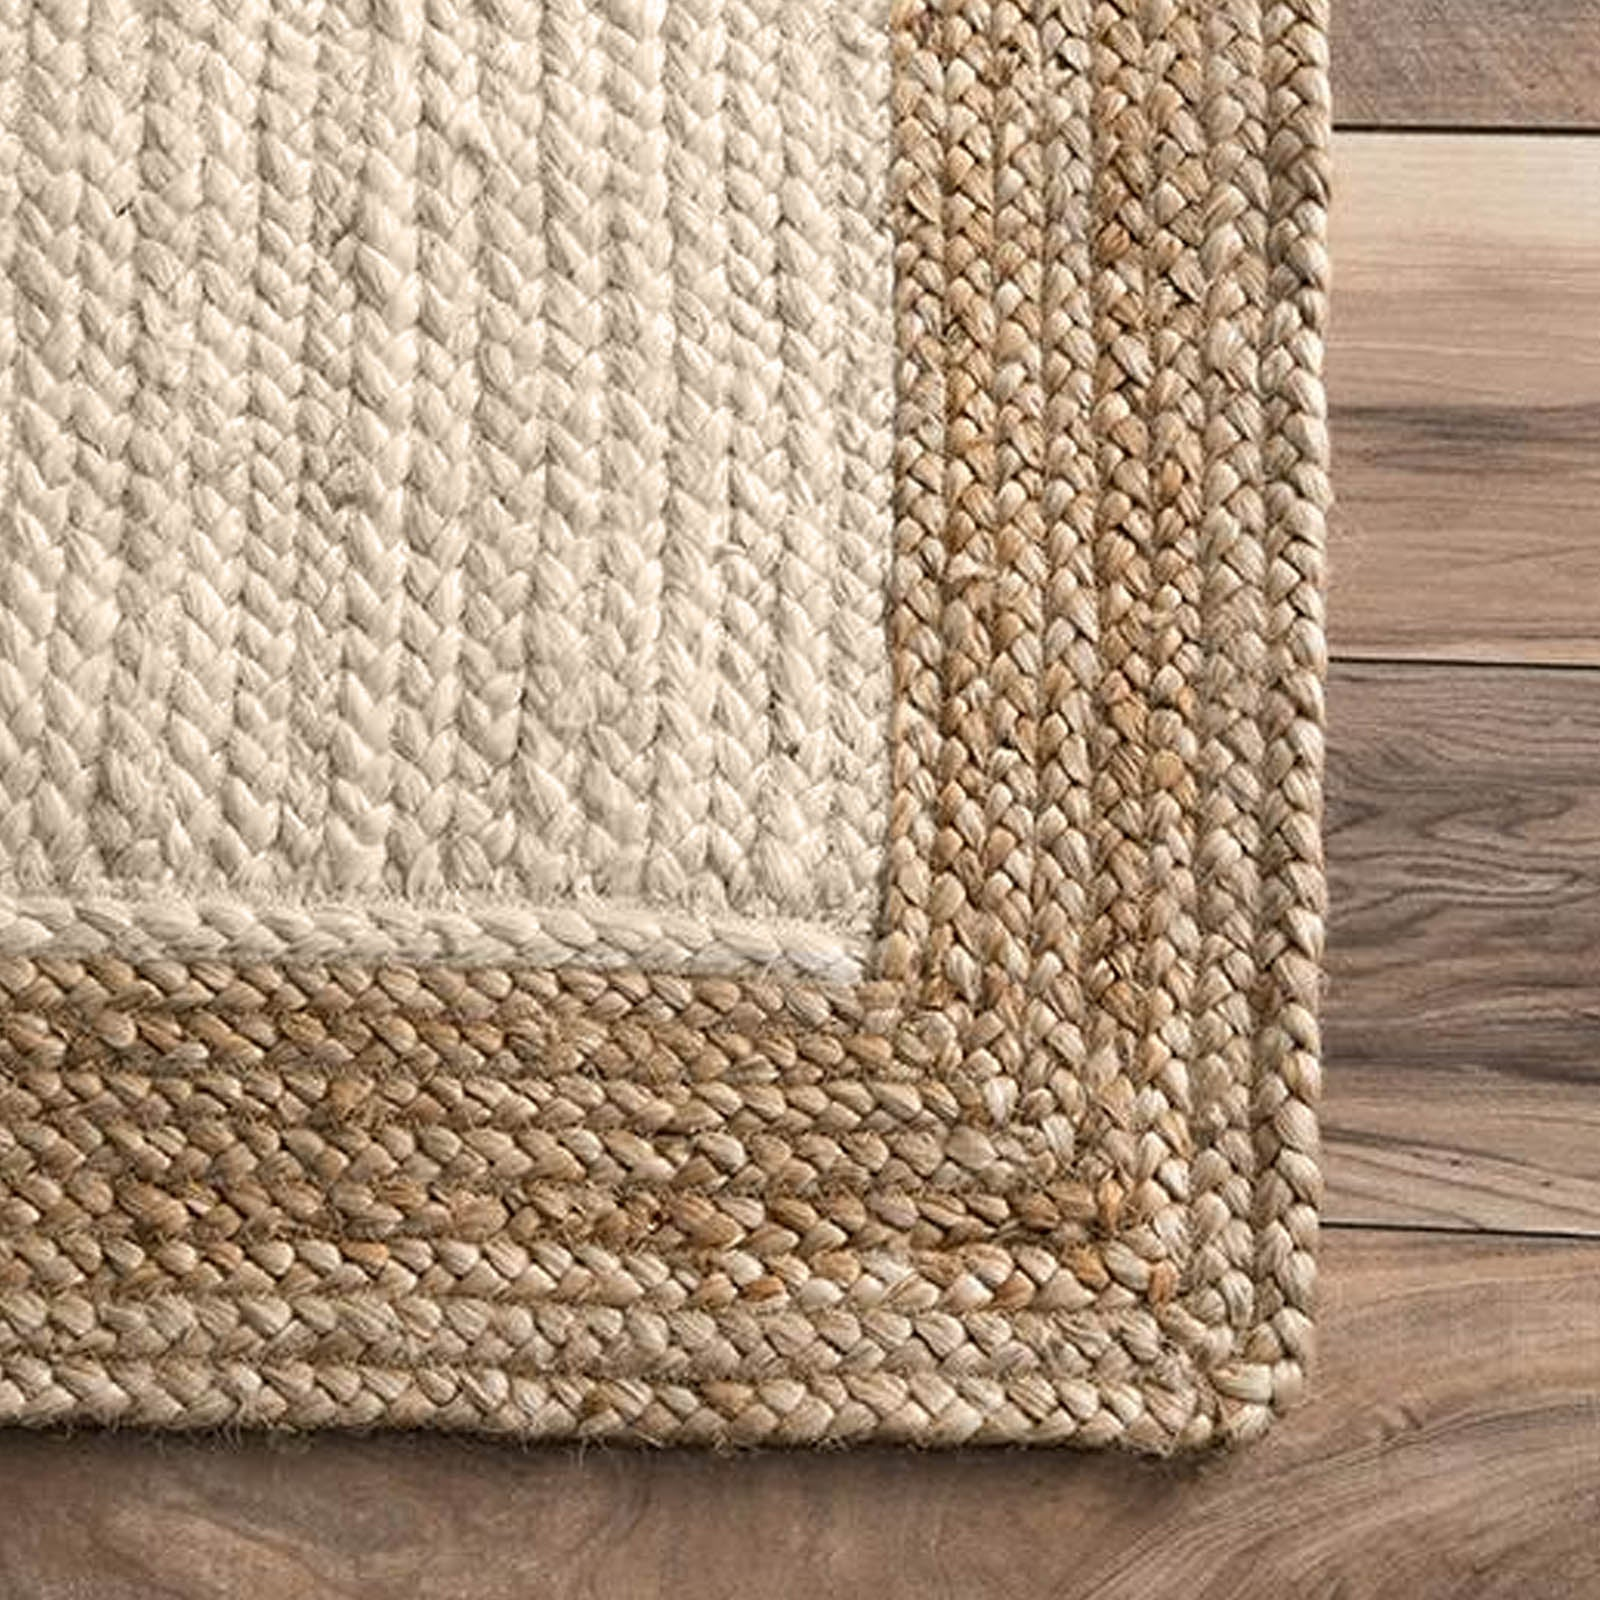 60X90 cm Braided Handmade Jute Rug Braided-001xs -  60X90 سم سجادة مصنوعة يدويًا من الجوت المجدول - Shop Online Furniture and Home Decor Store in Dubai, UAE at ebarza